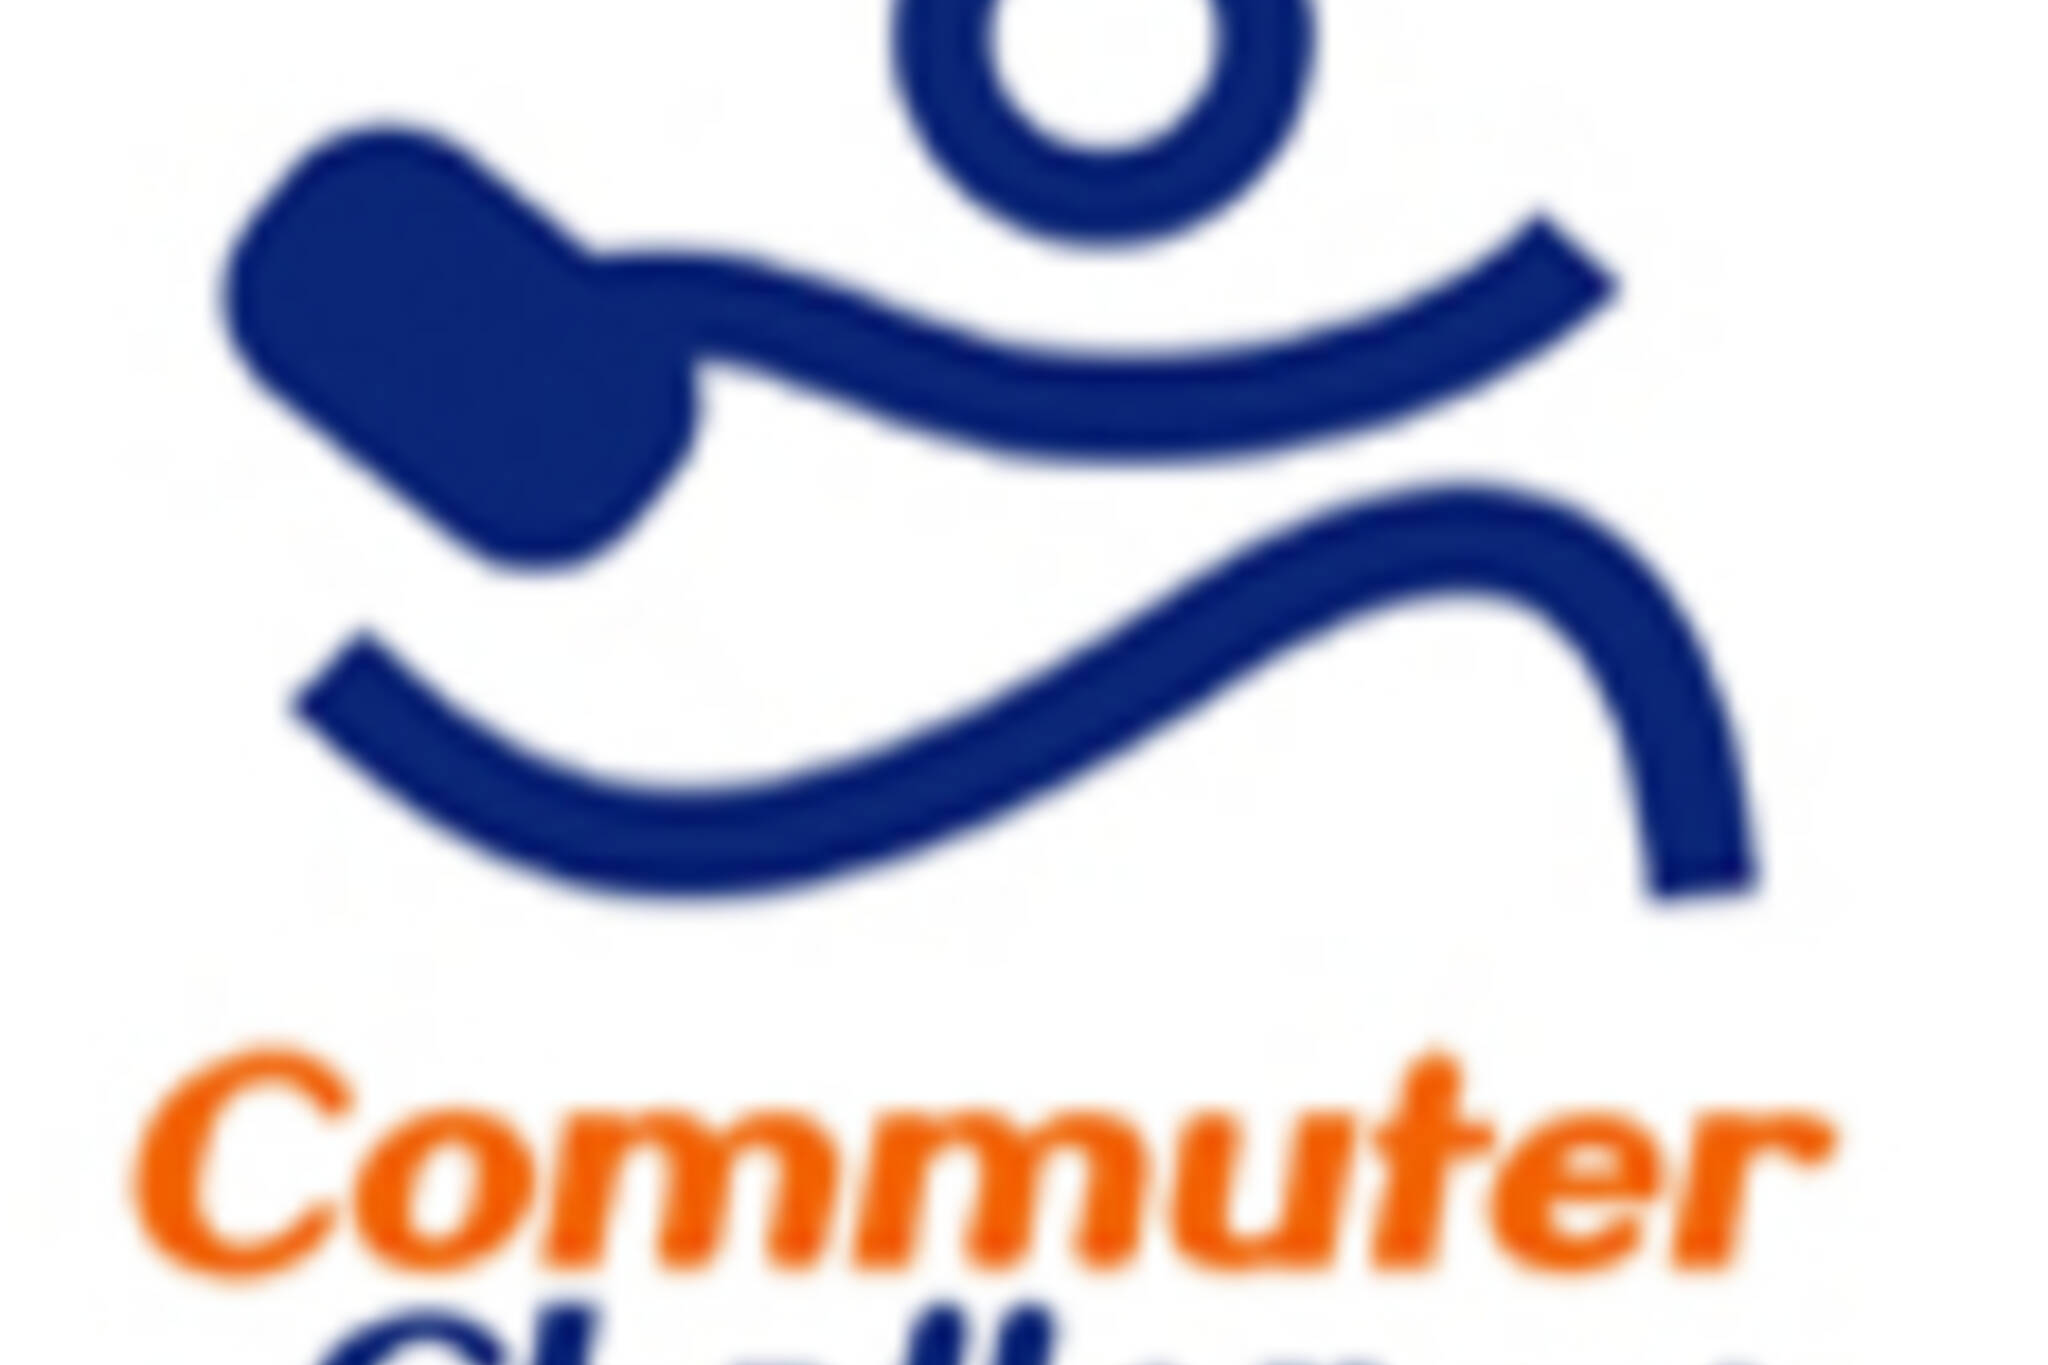 National Commuter Challenge